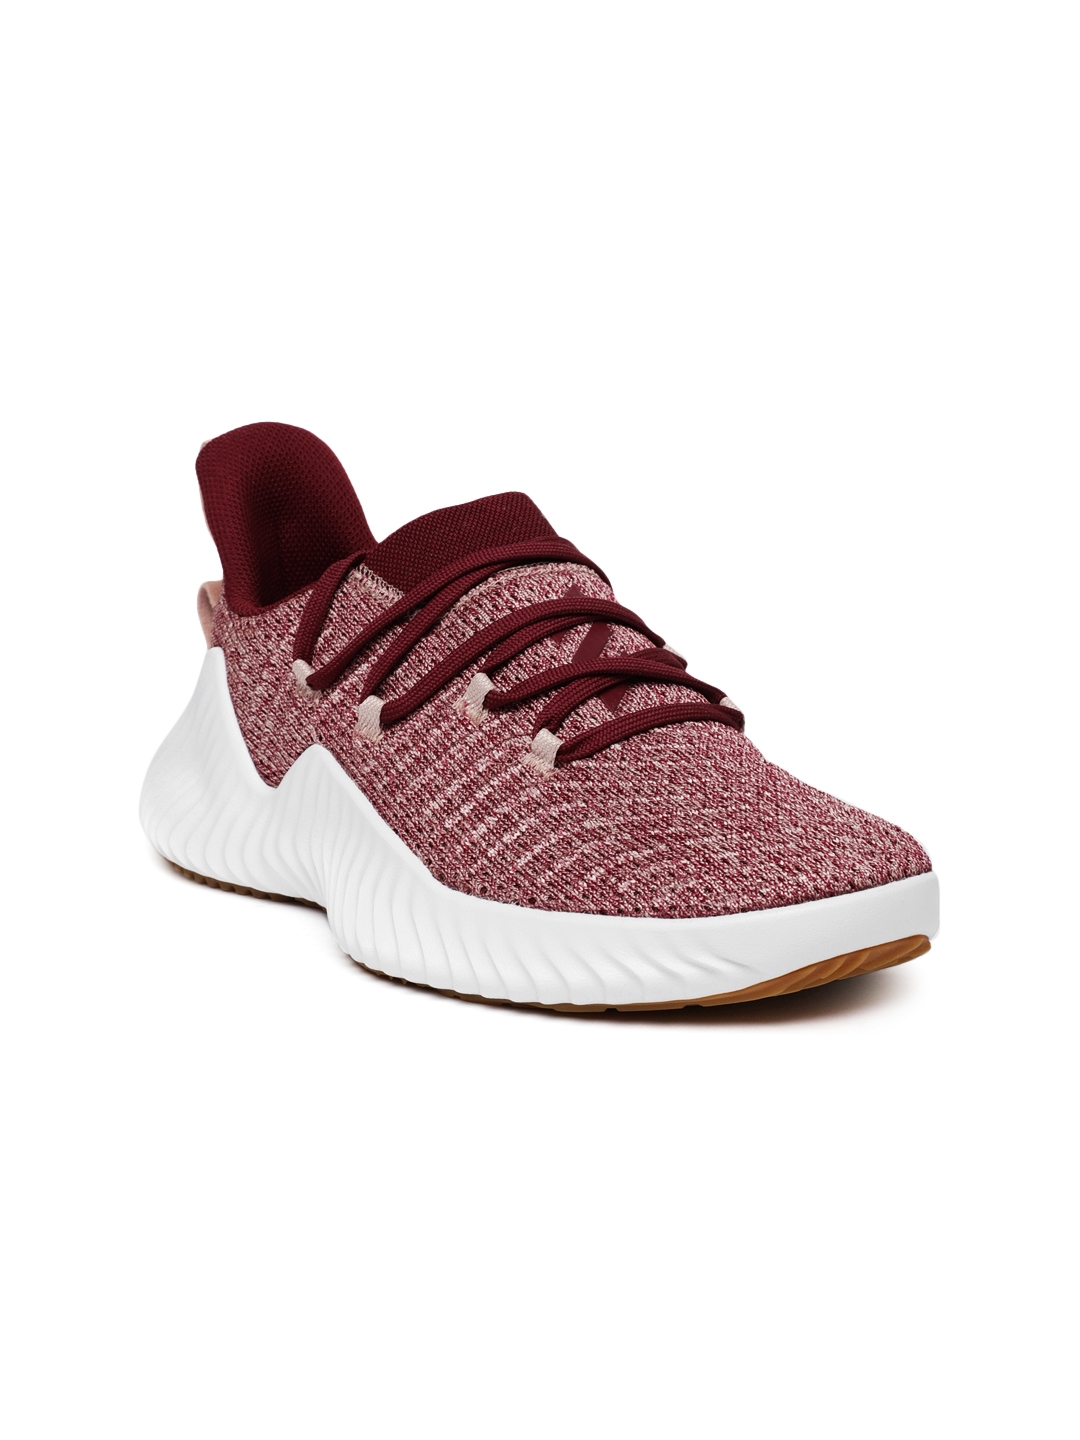 new product 94fea 7b7b6 ADIDAS Women Maroon ALPHABOUNCE Training Shoes